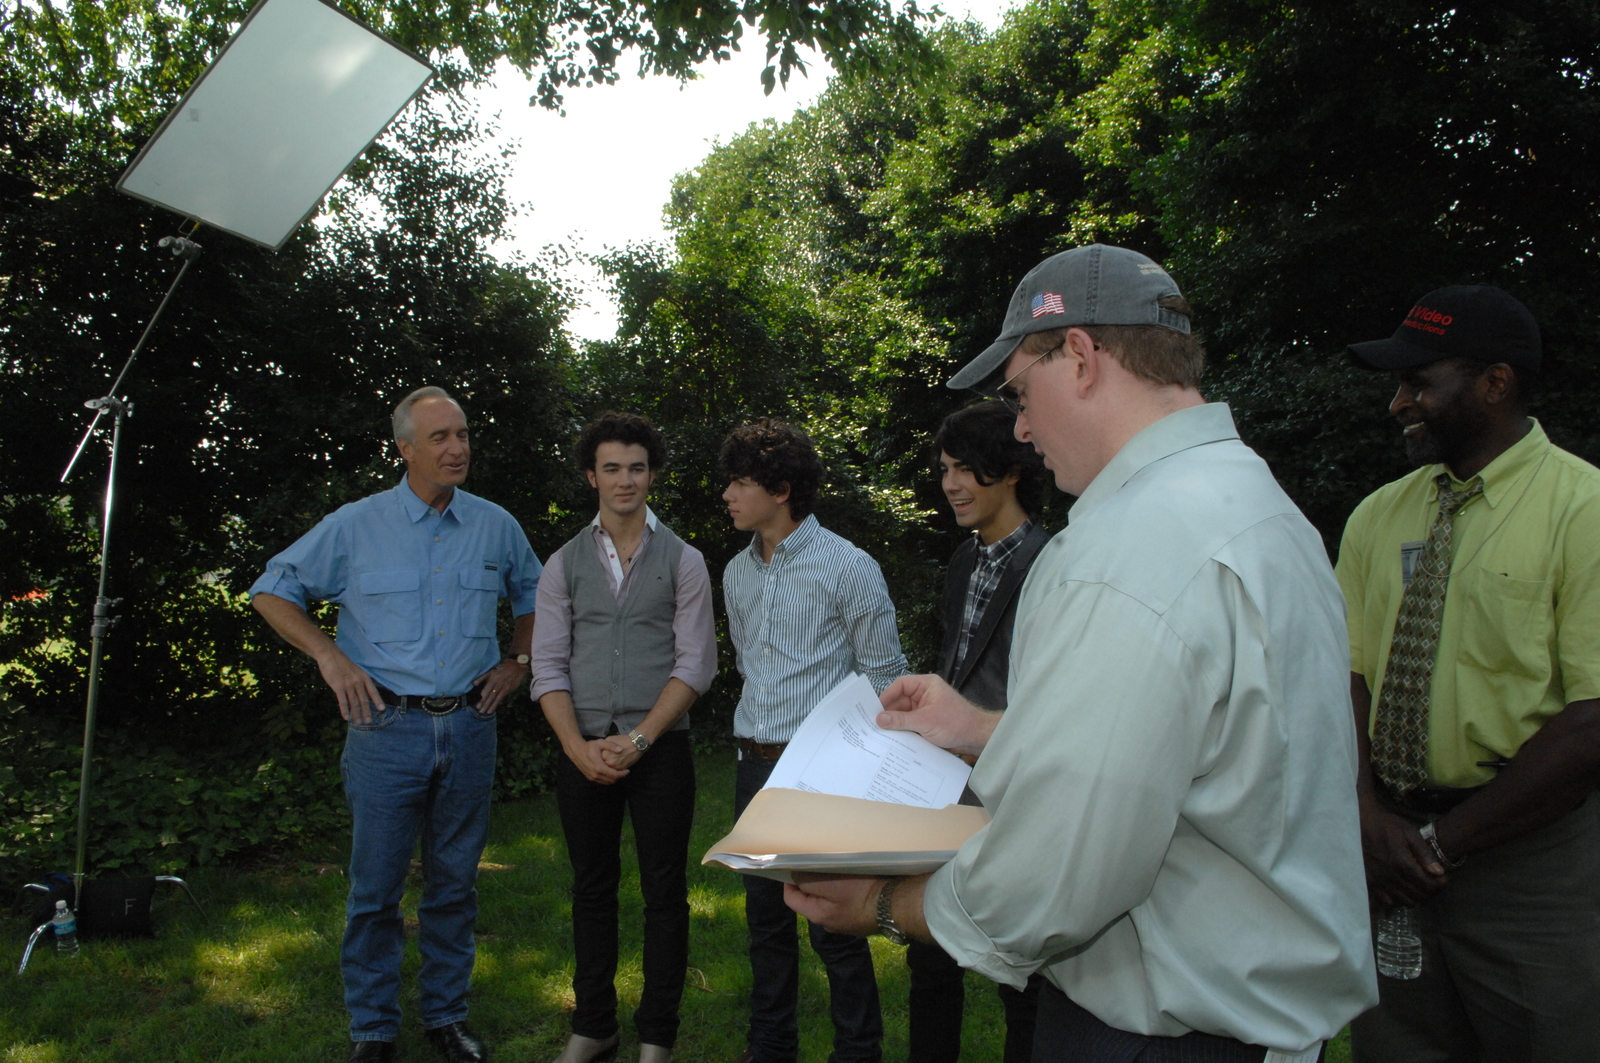 """[Assignment: 48-DPA-08-18-08_SOI_K_Jonas_Bros] Secretary Dirk Kempthorne [and aides joined by pop music stars], the Jonas Brothers--Kevin, Joe, and Nick--for work on Public Service Announcement (PSA) [video, shot on the White House South Lawn, promoting the """"Get Outdoors, It's Yours"""" campaign] [48-DPA-08-18-08_SOI_K_Jonas_Bros_IOD_3108.JPG]"""